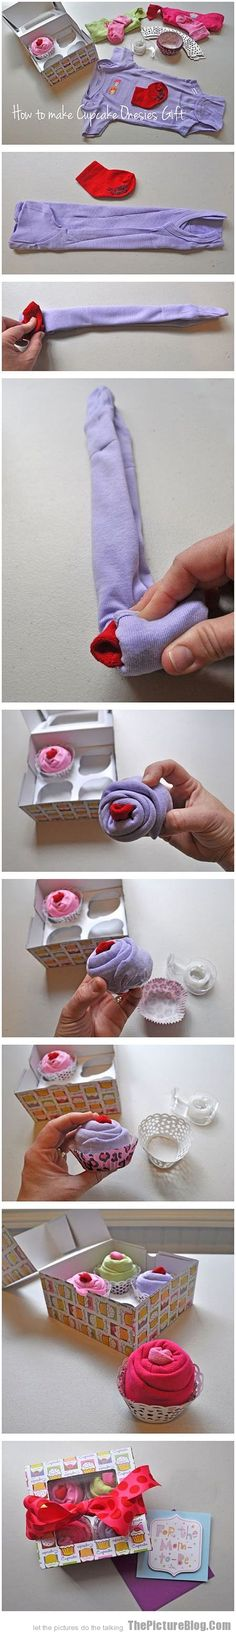 How to Gift Baby Clothing! How clever!